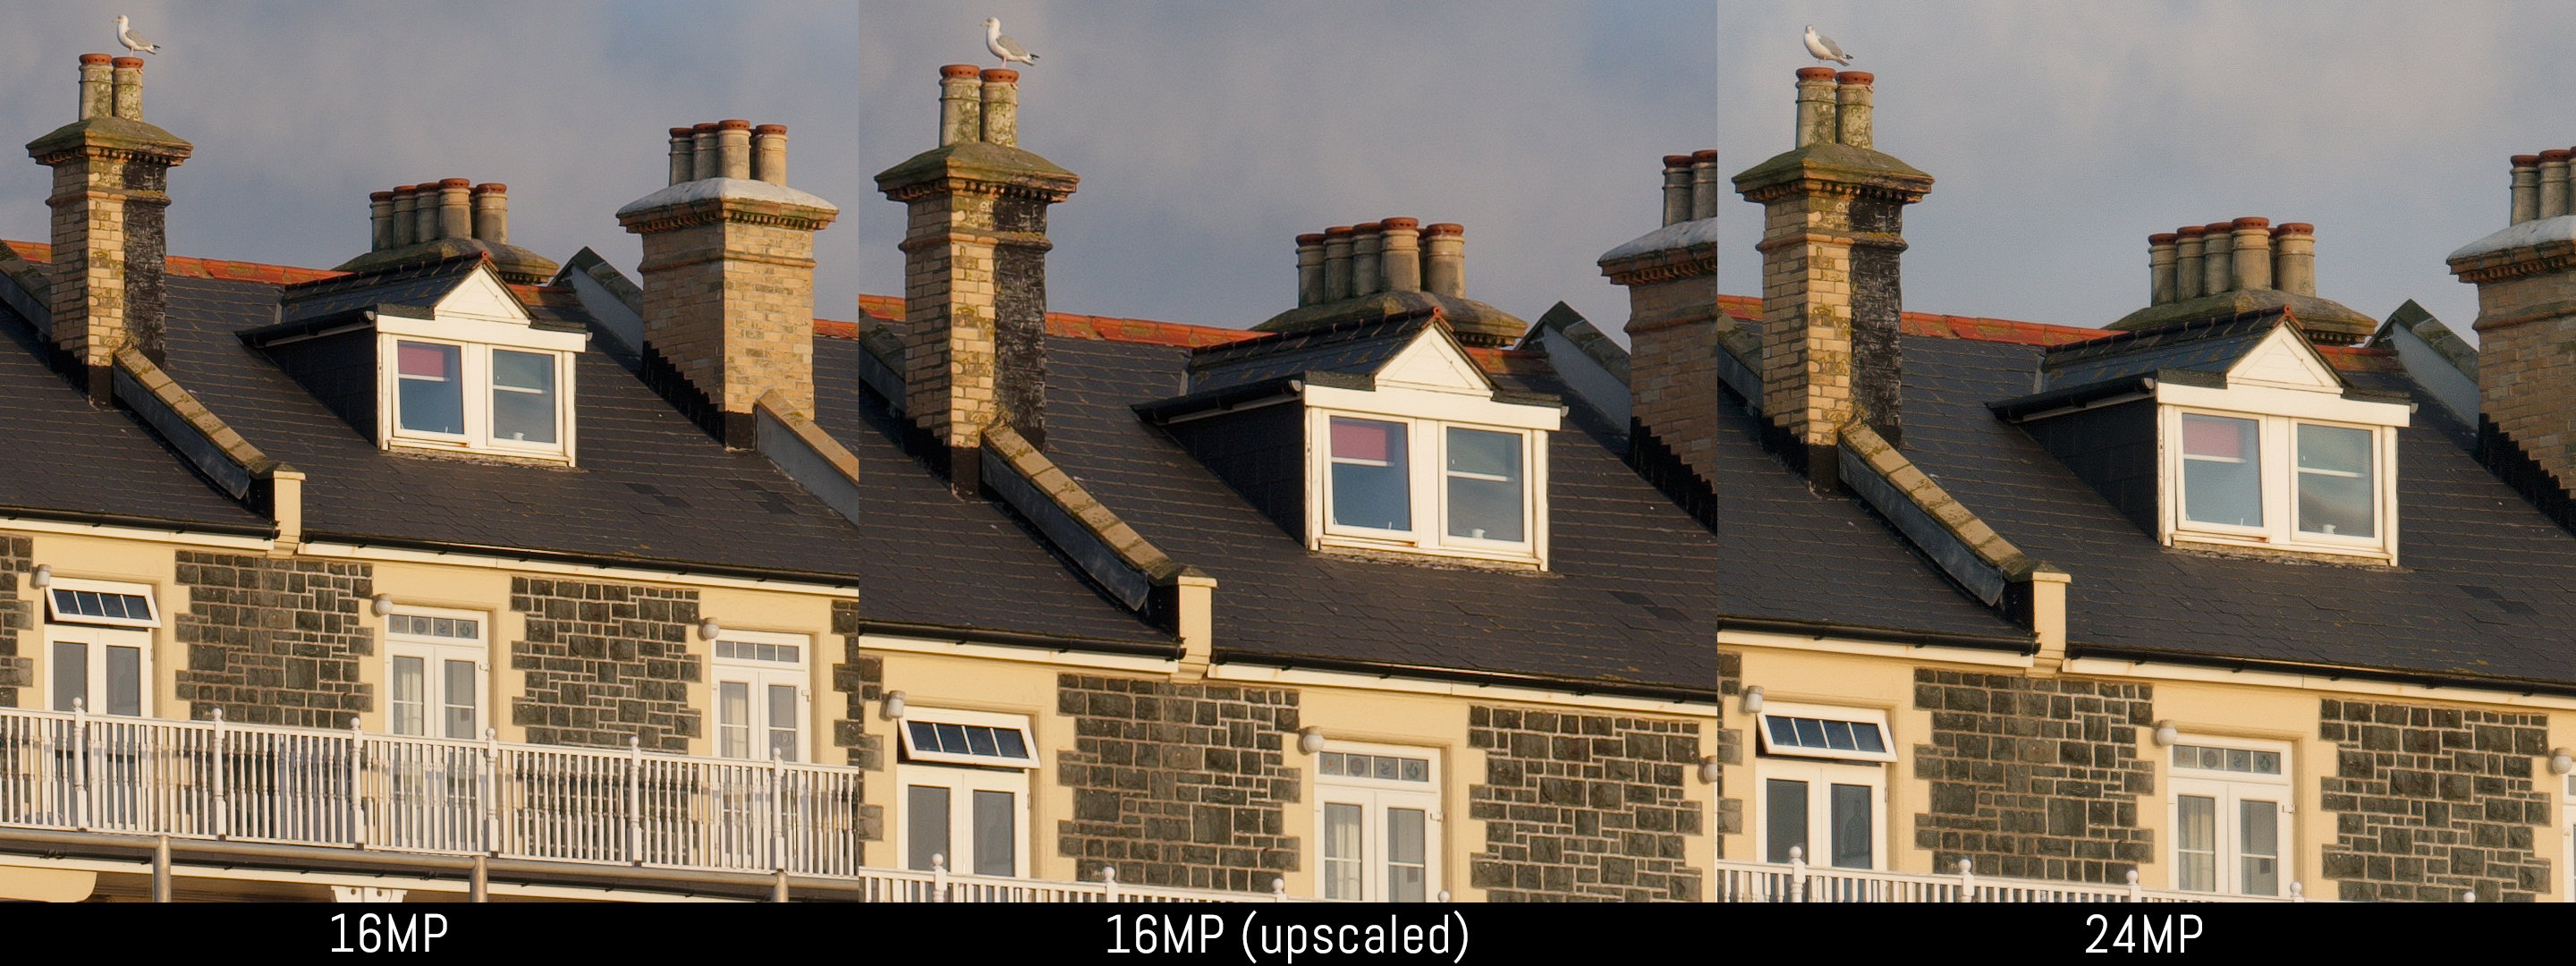 Fujifilm X T1 Vs T20 Five Key Aspects Analysed Baterai Fuji Np W126 For A3 E1 Pro 1 T2 With Packing Reference Image 100 Crop